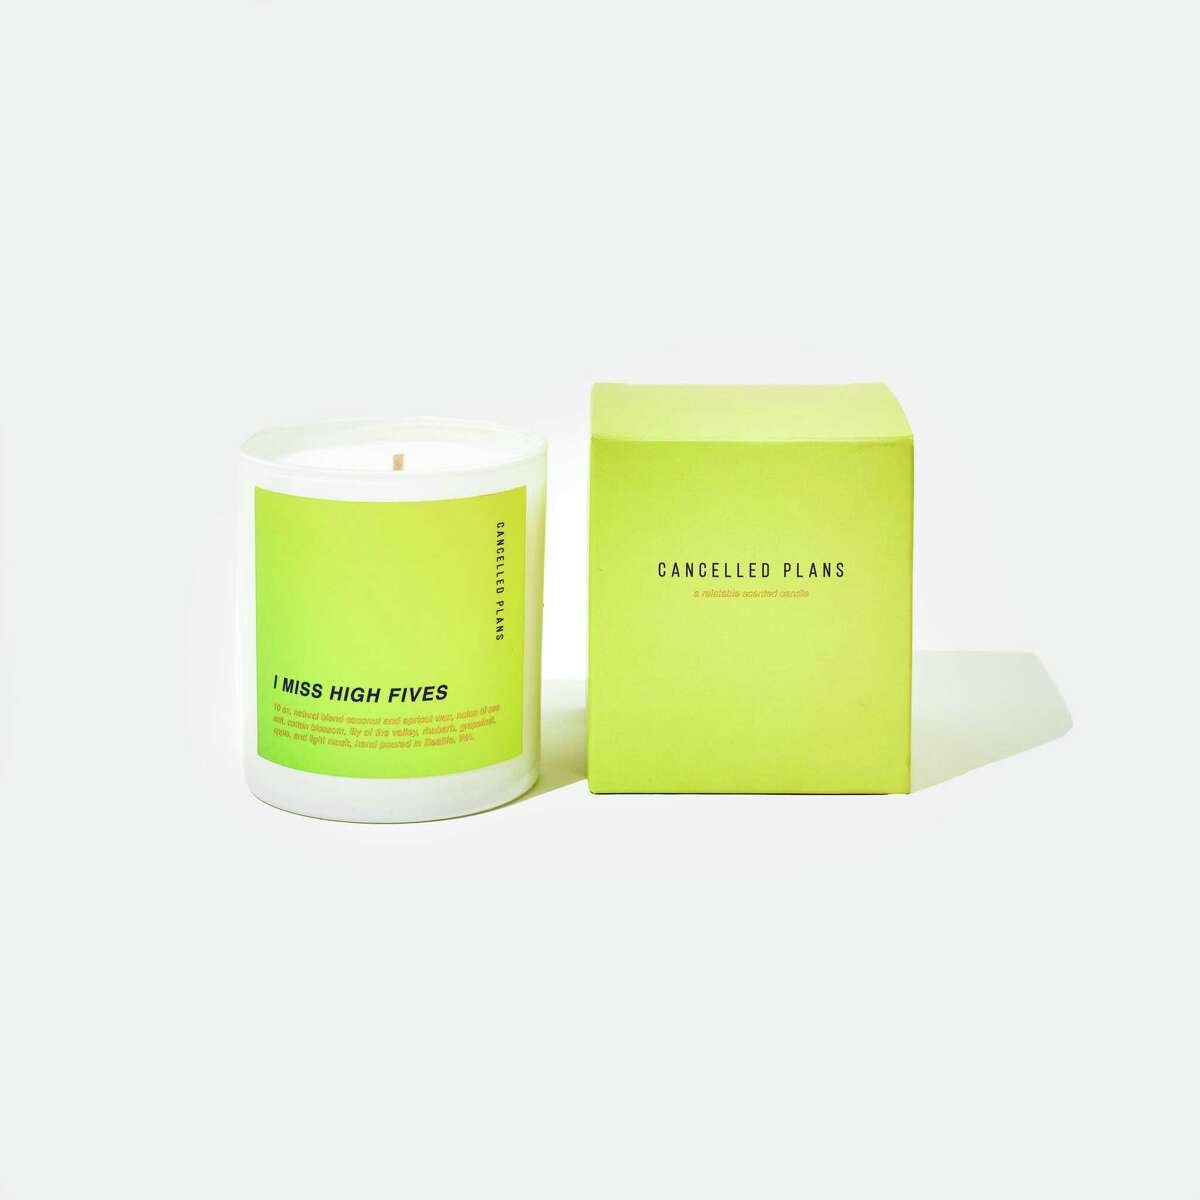 Cancelled Plans candle; $32 at cancelledplans.us